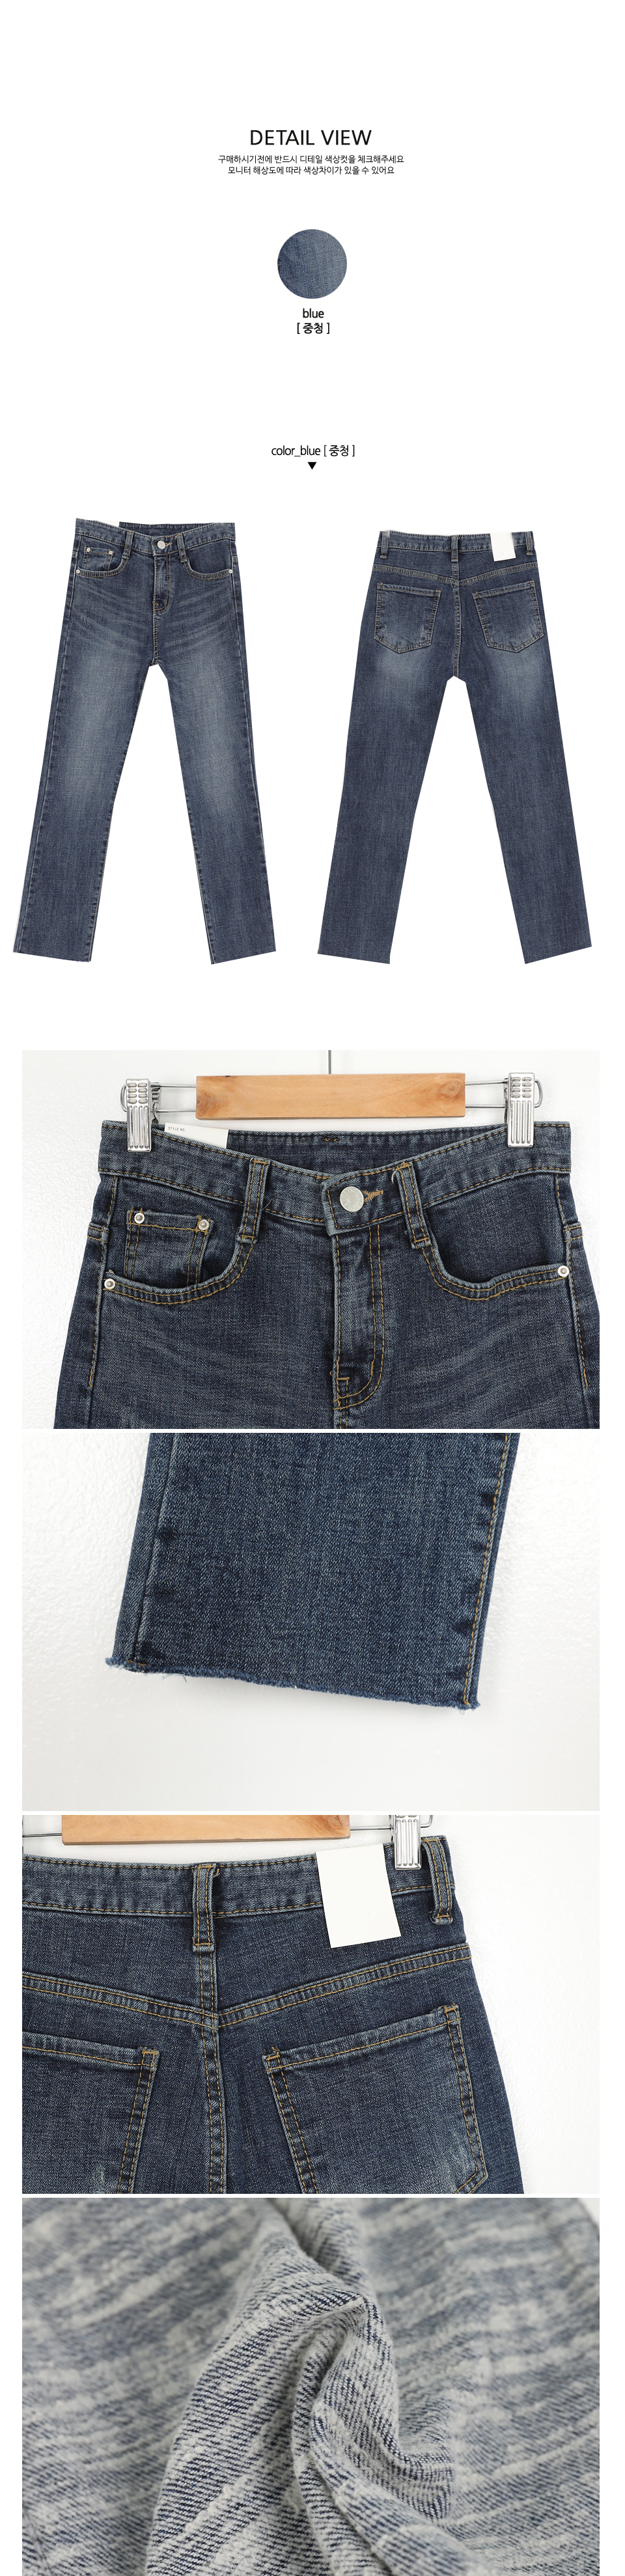 Ritto brushed pants